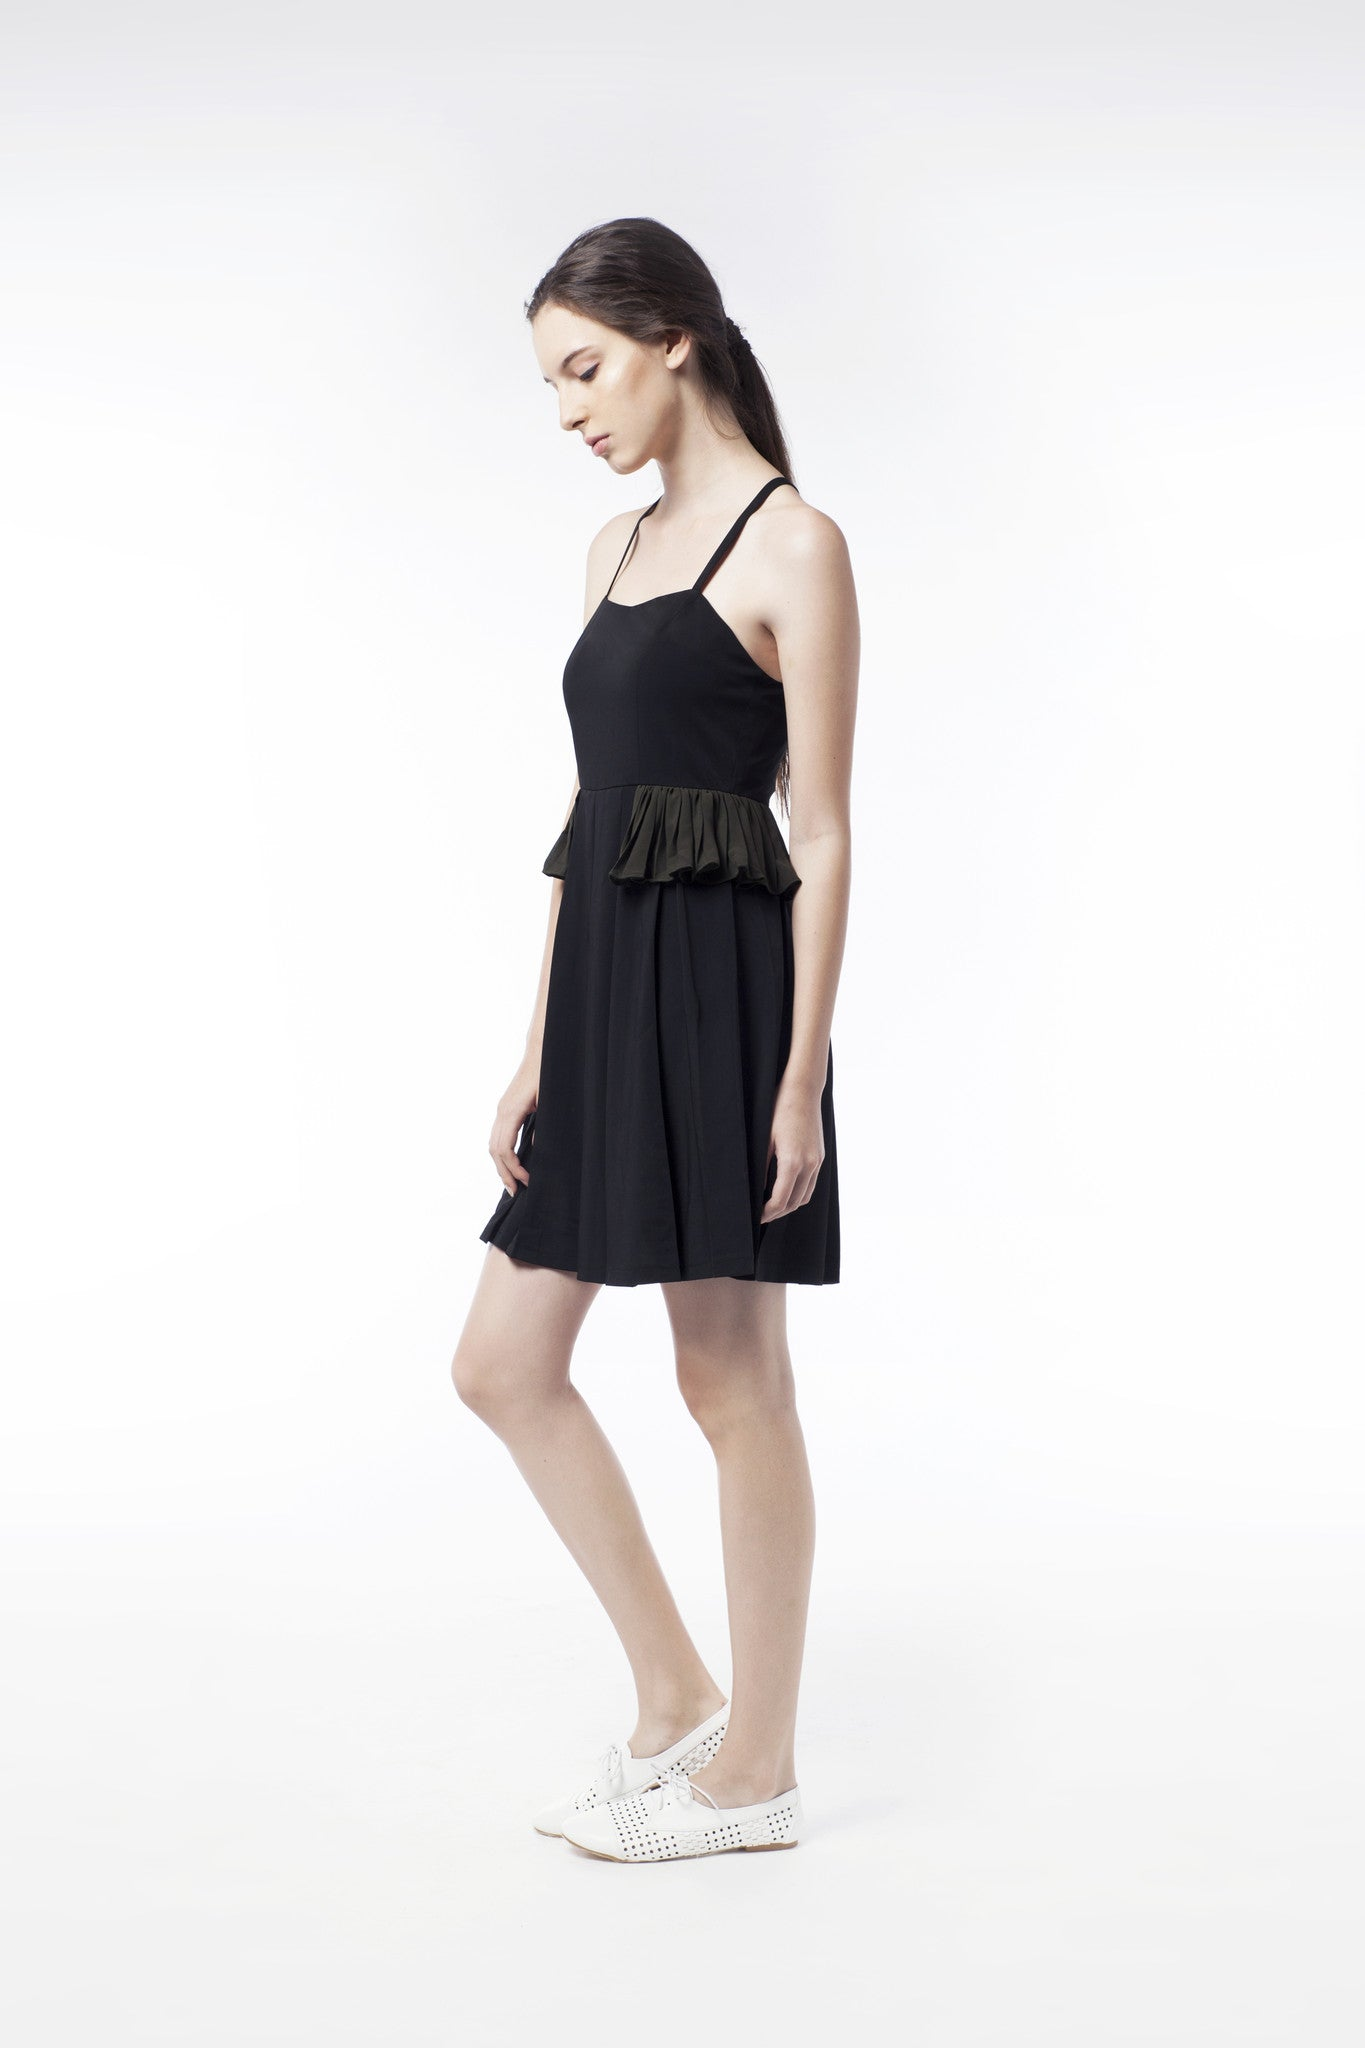 Little Black Dress With Frill - GlanceZ   - 2